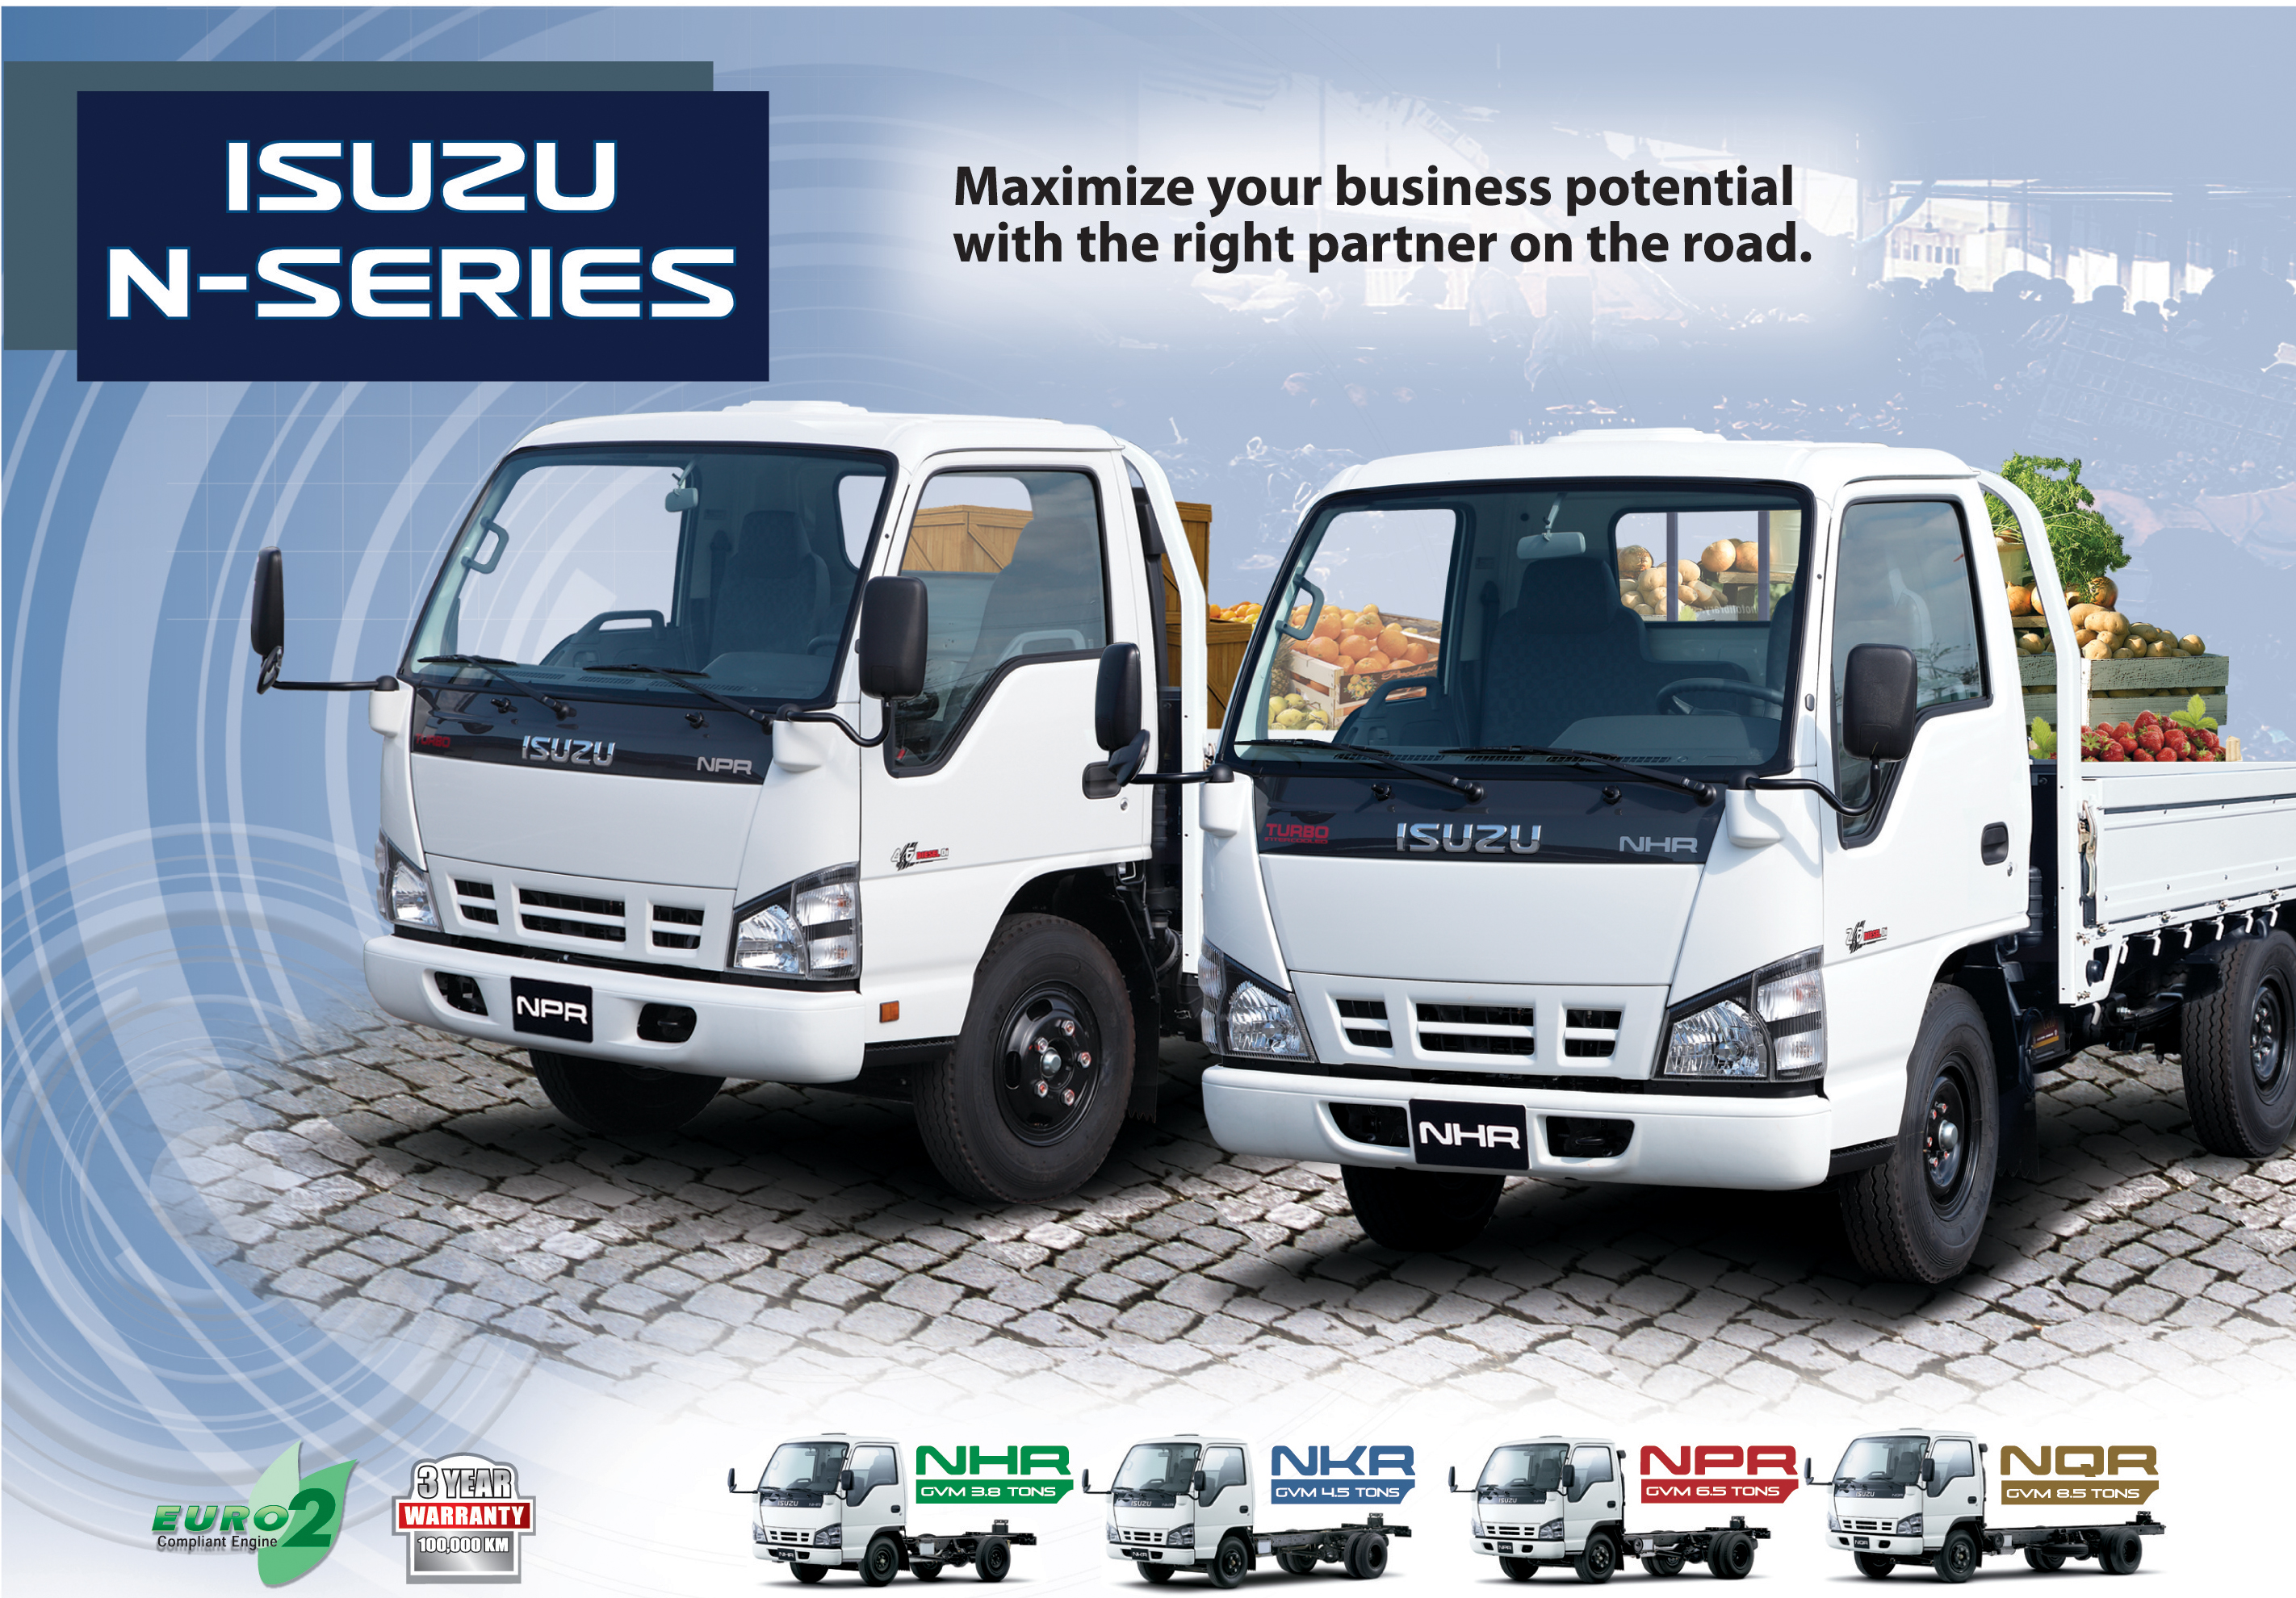 Isuzu n-series photo - 4